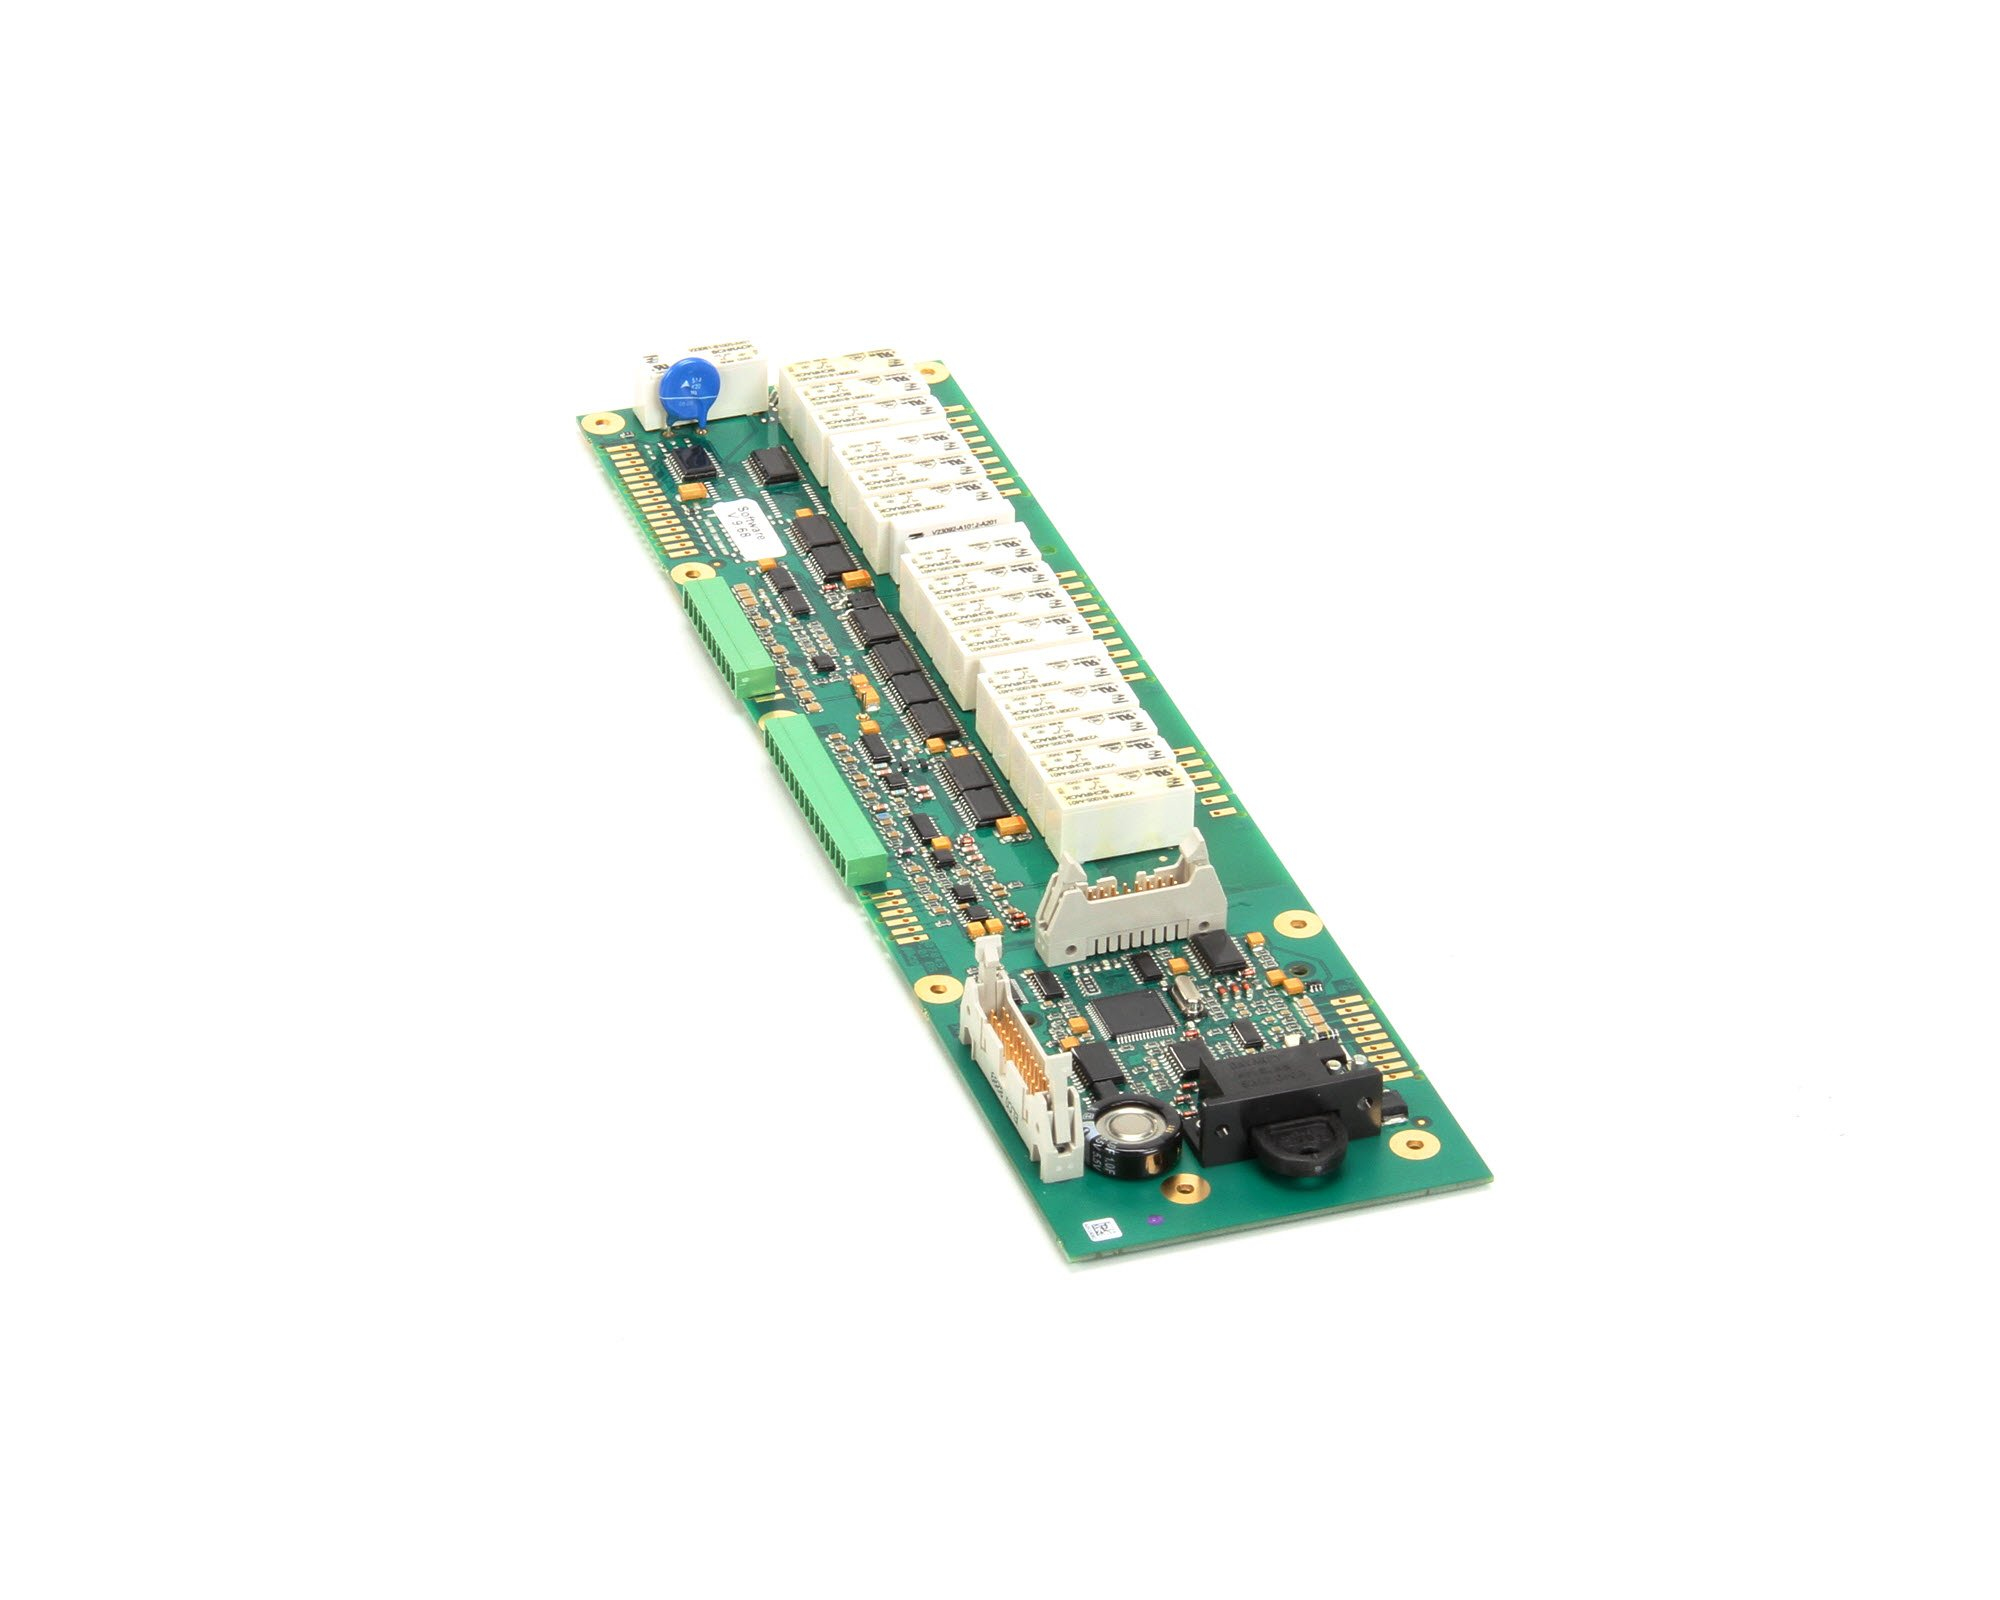 Alto Shaam BA-34626 Zz Relay Board with Data Key, Es/Esg